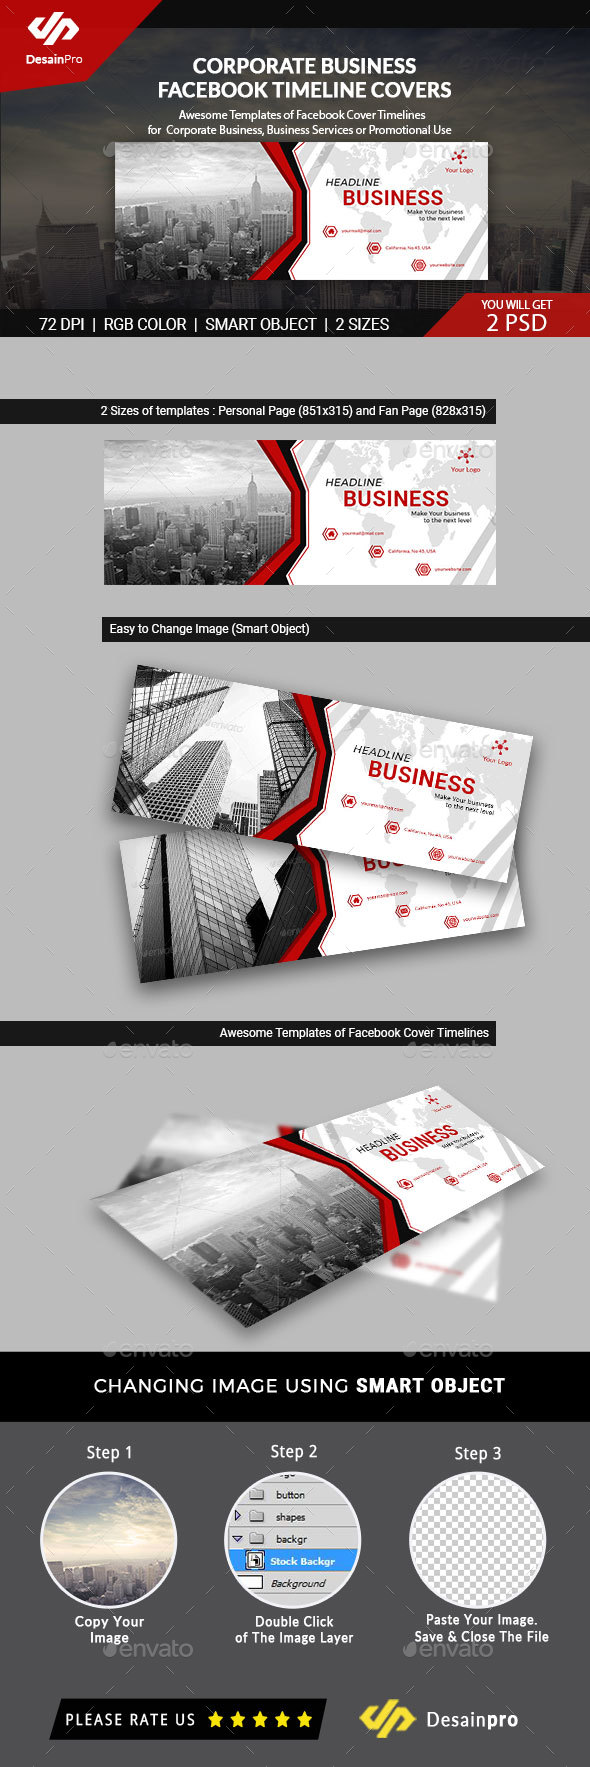 Corporate Business FB Timeline Cover - AR - Facebook Timeline Covers Social Media